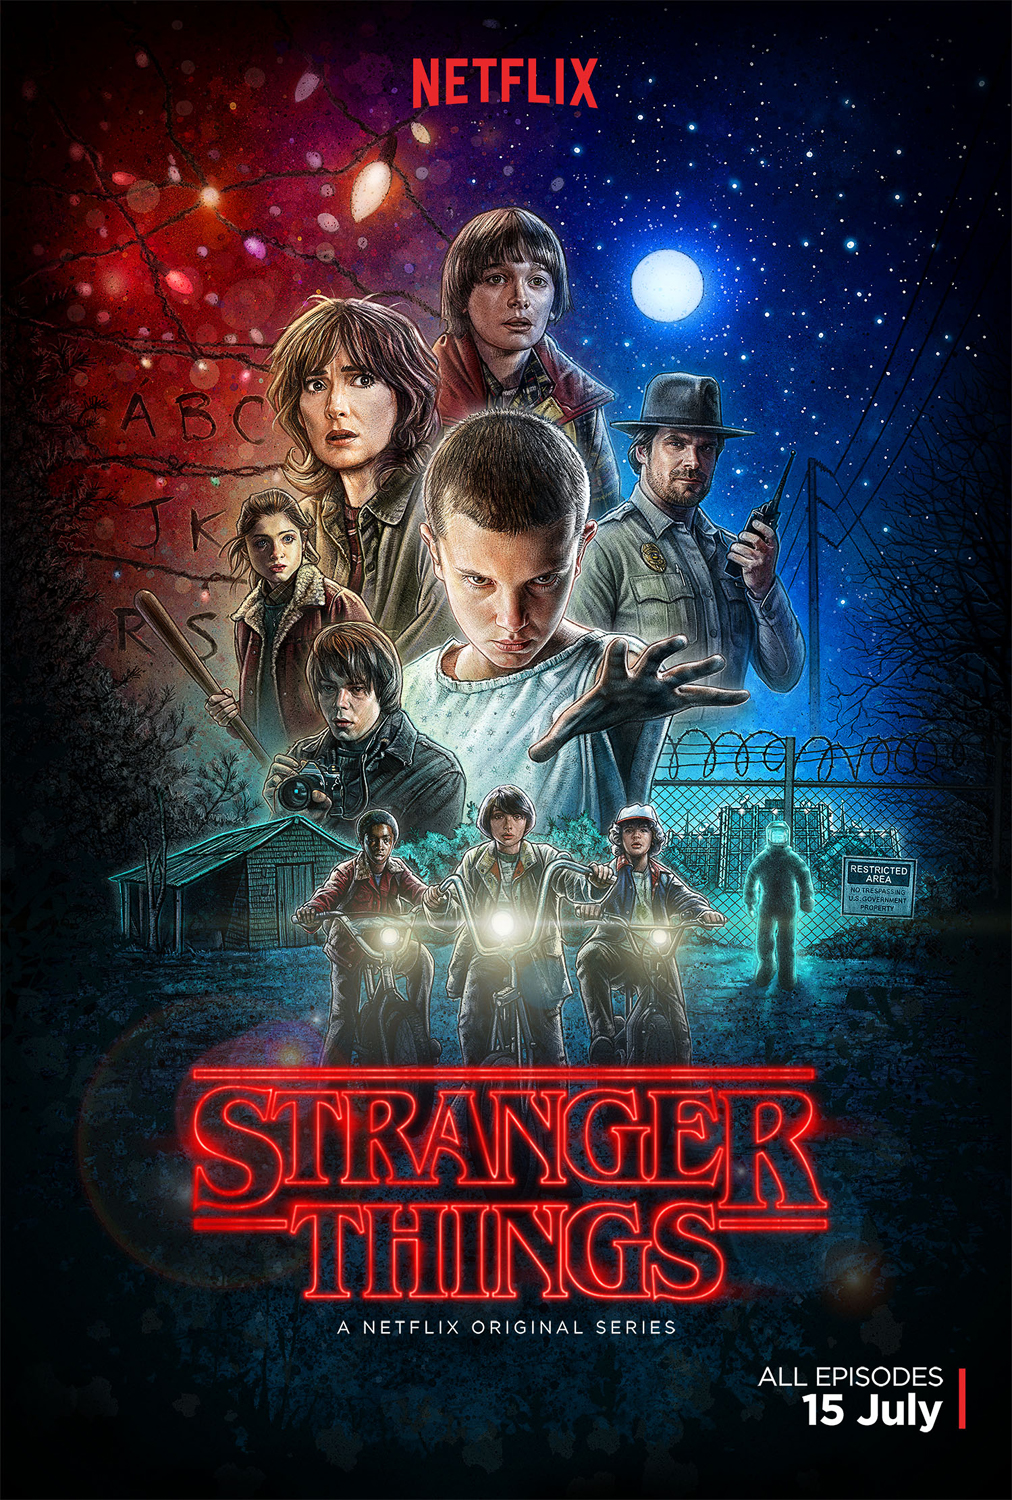 Stranger Things Season 1 cover image